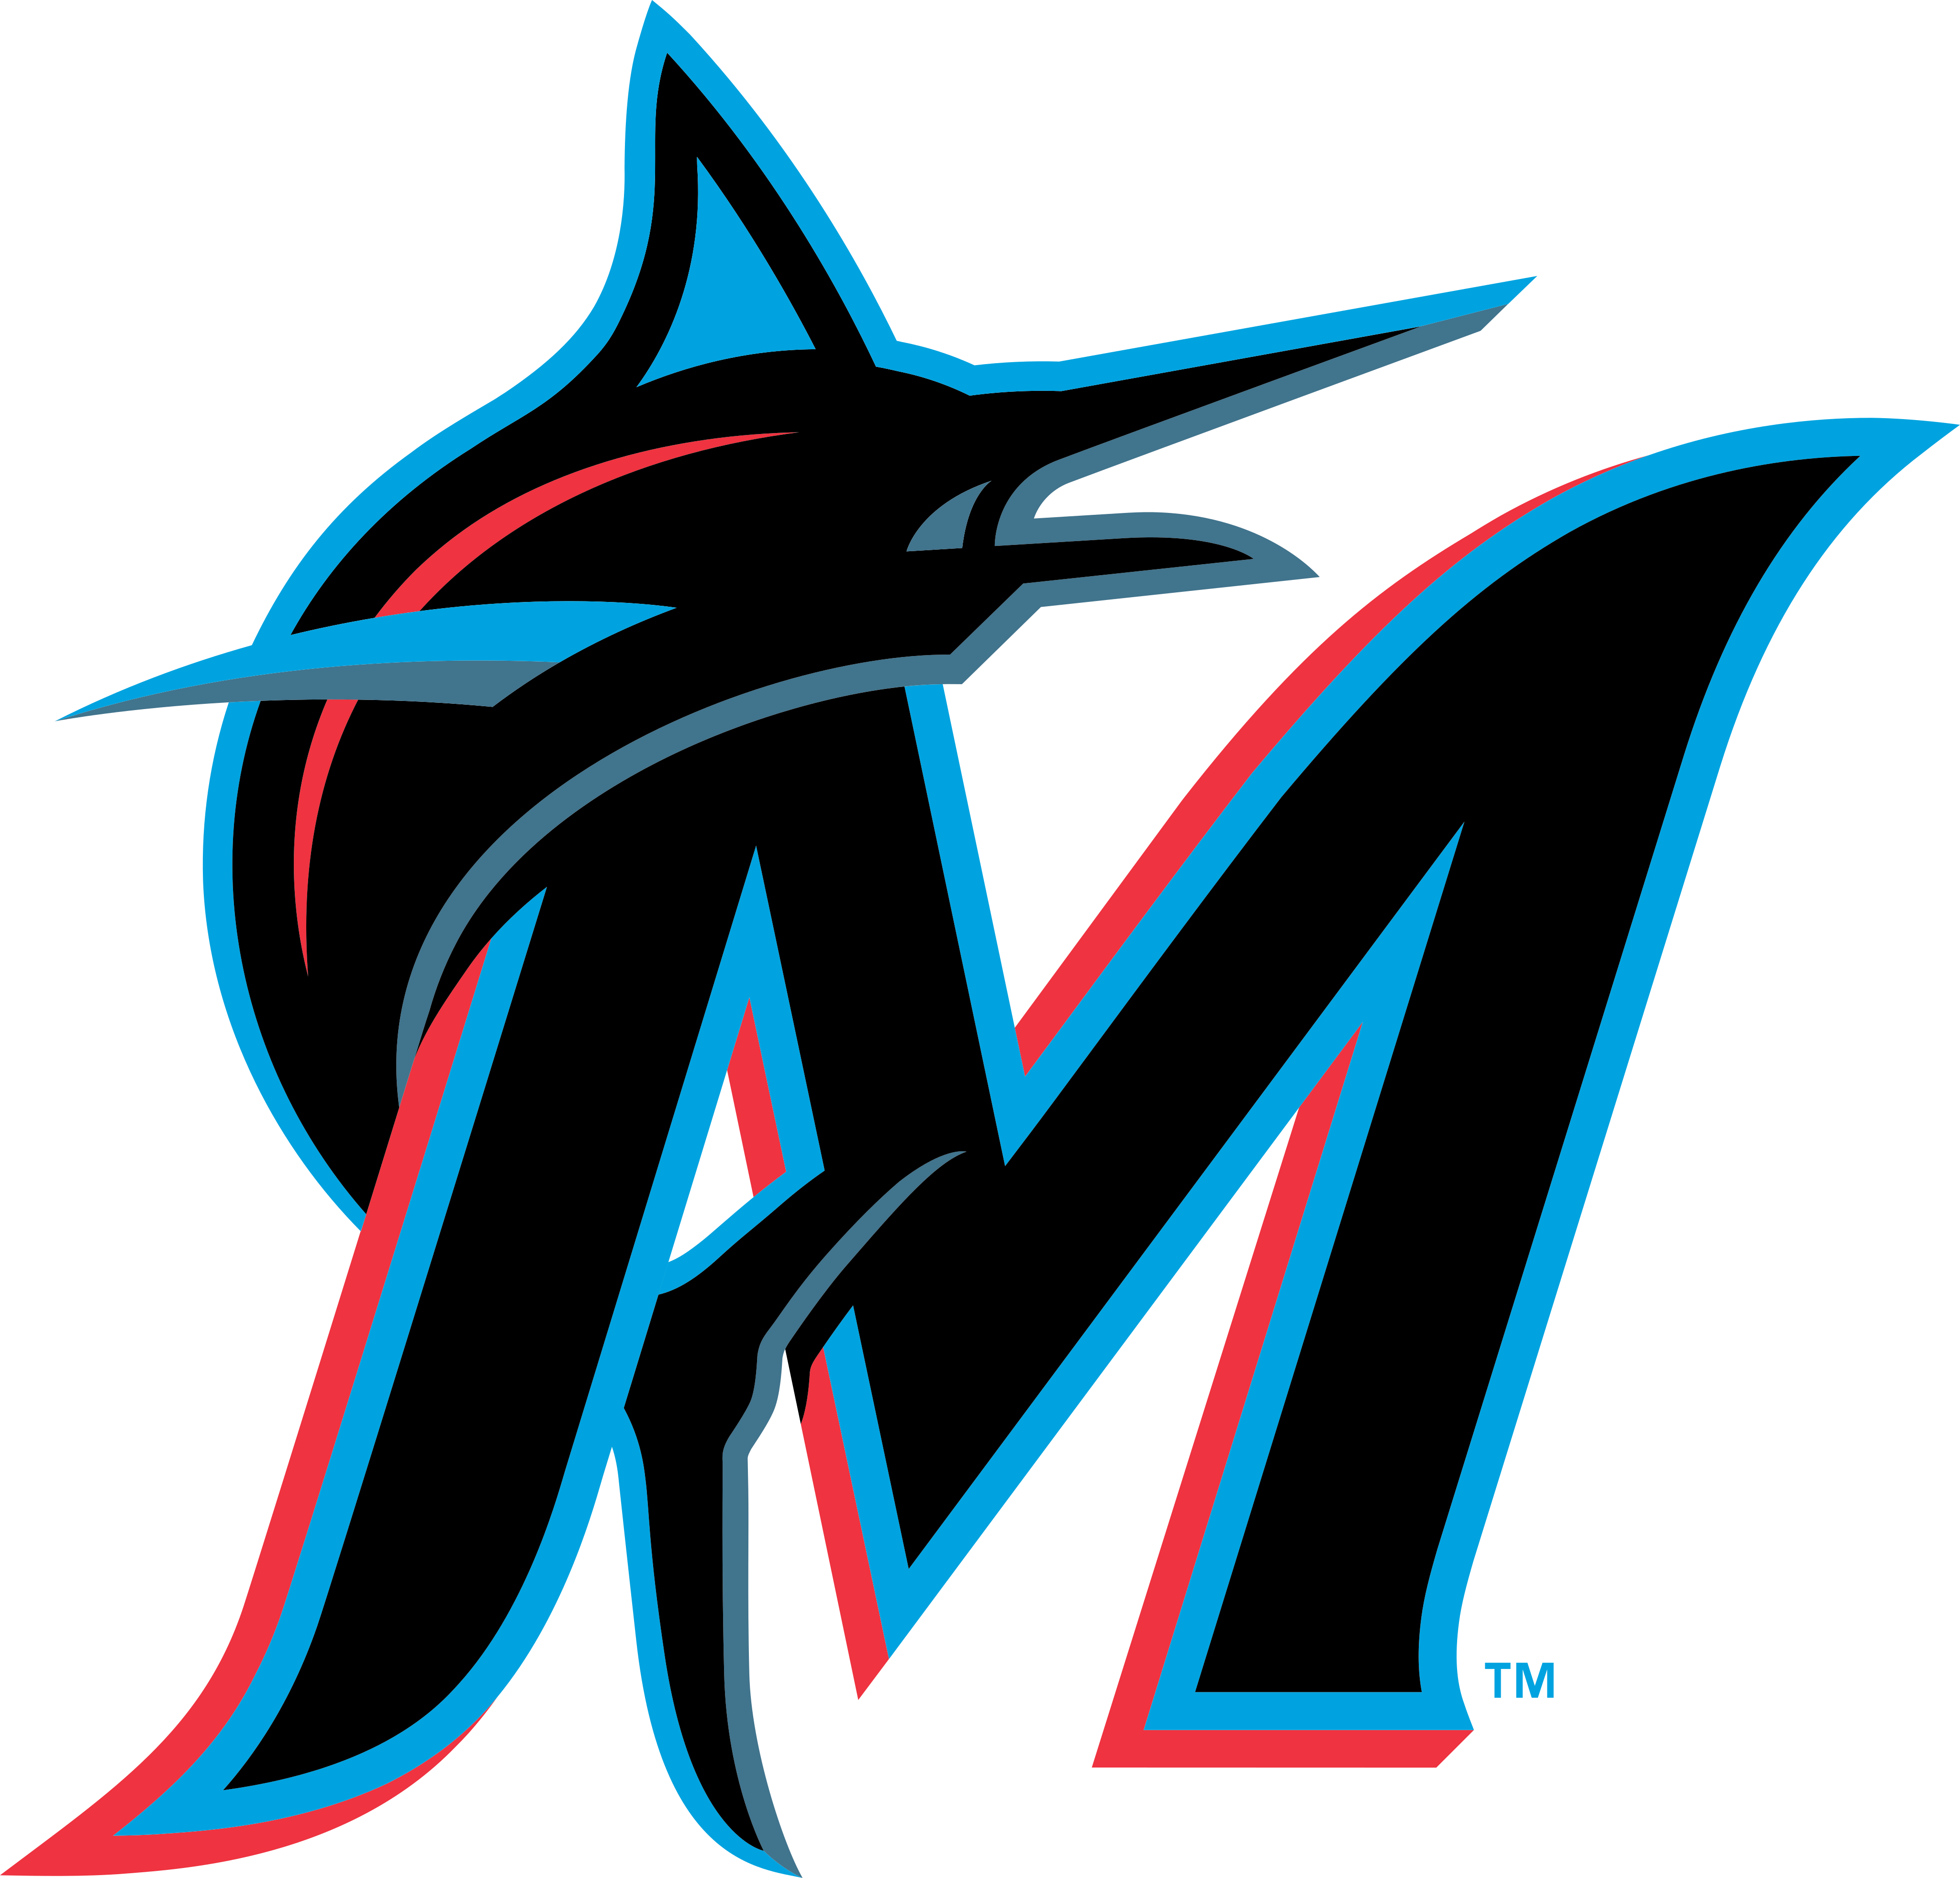 miami marlins logo - Miami Marlins Logo